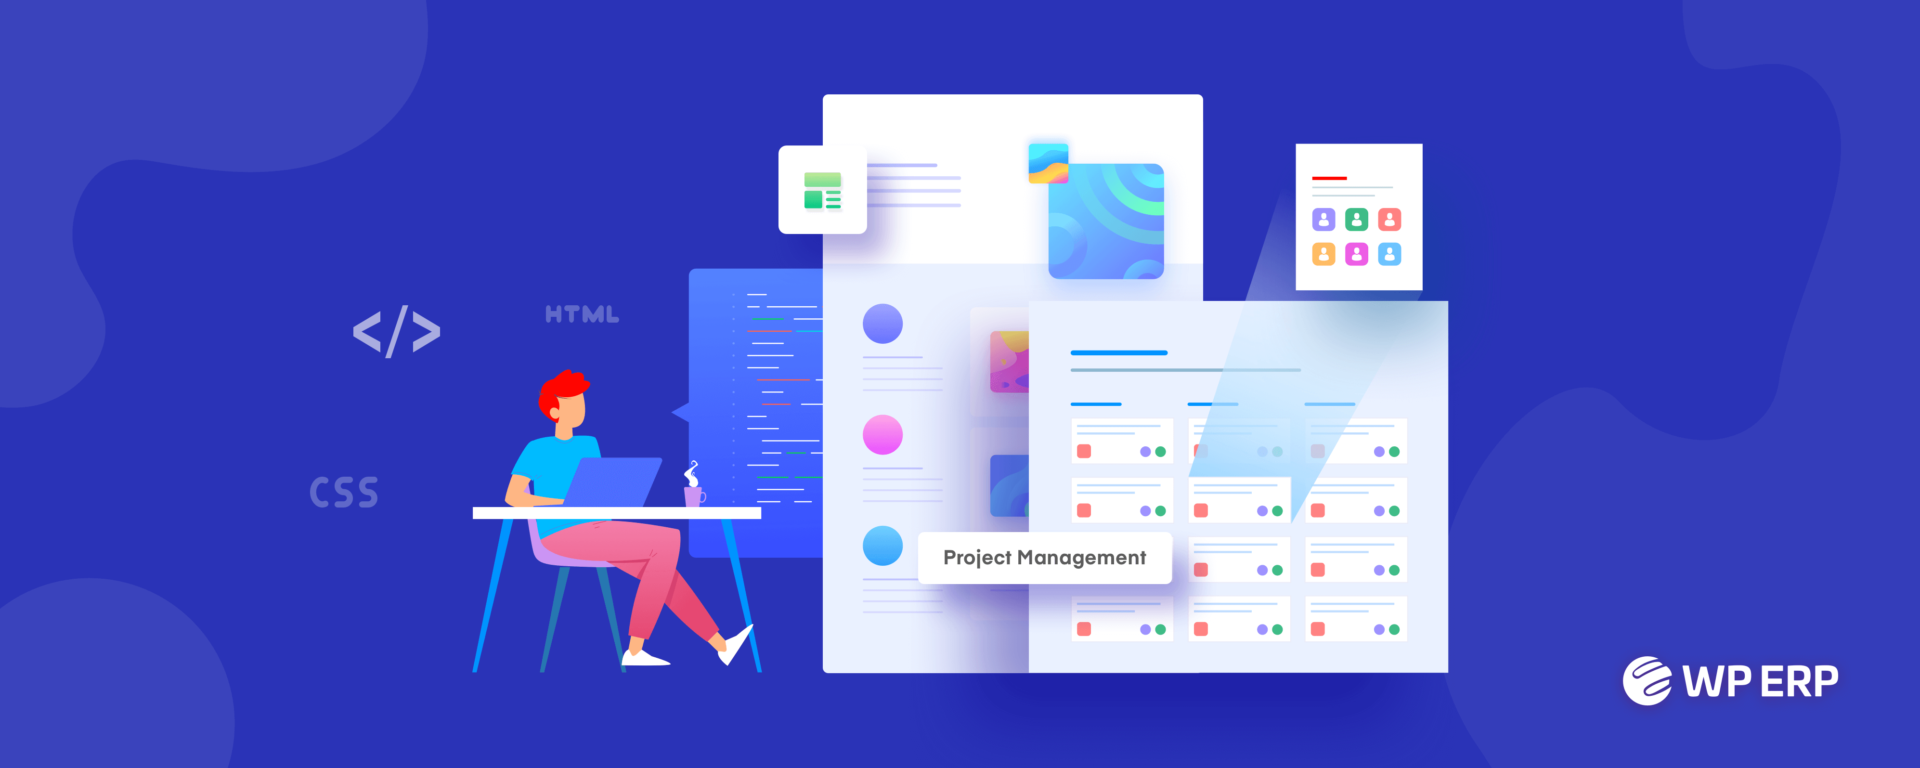 project management software for web designers